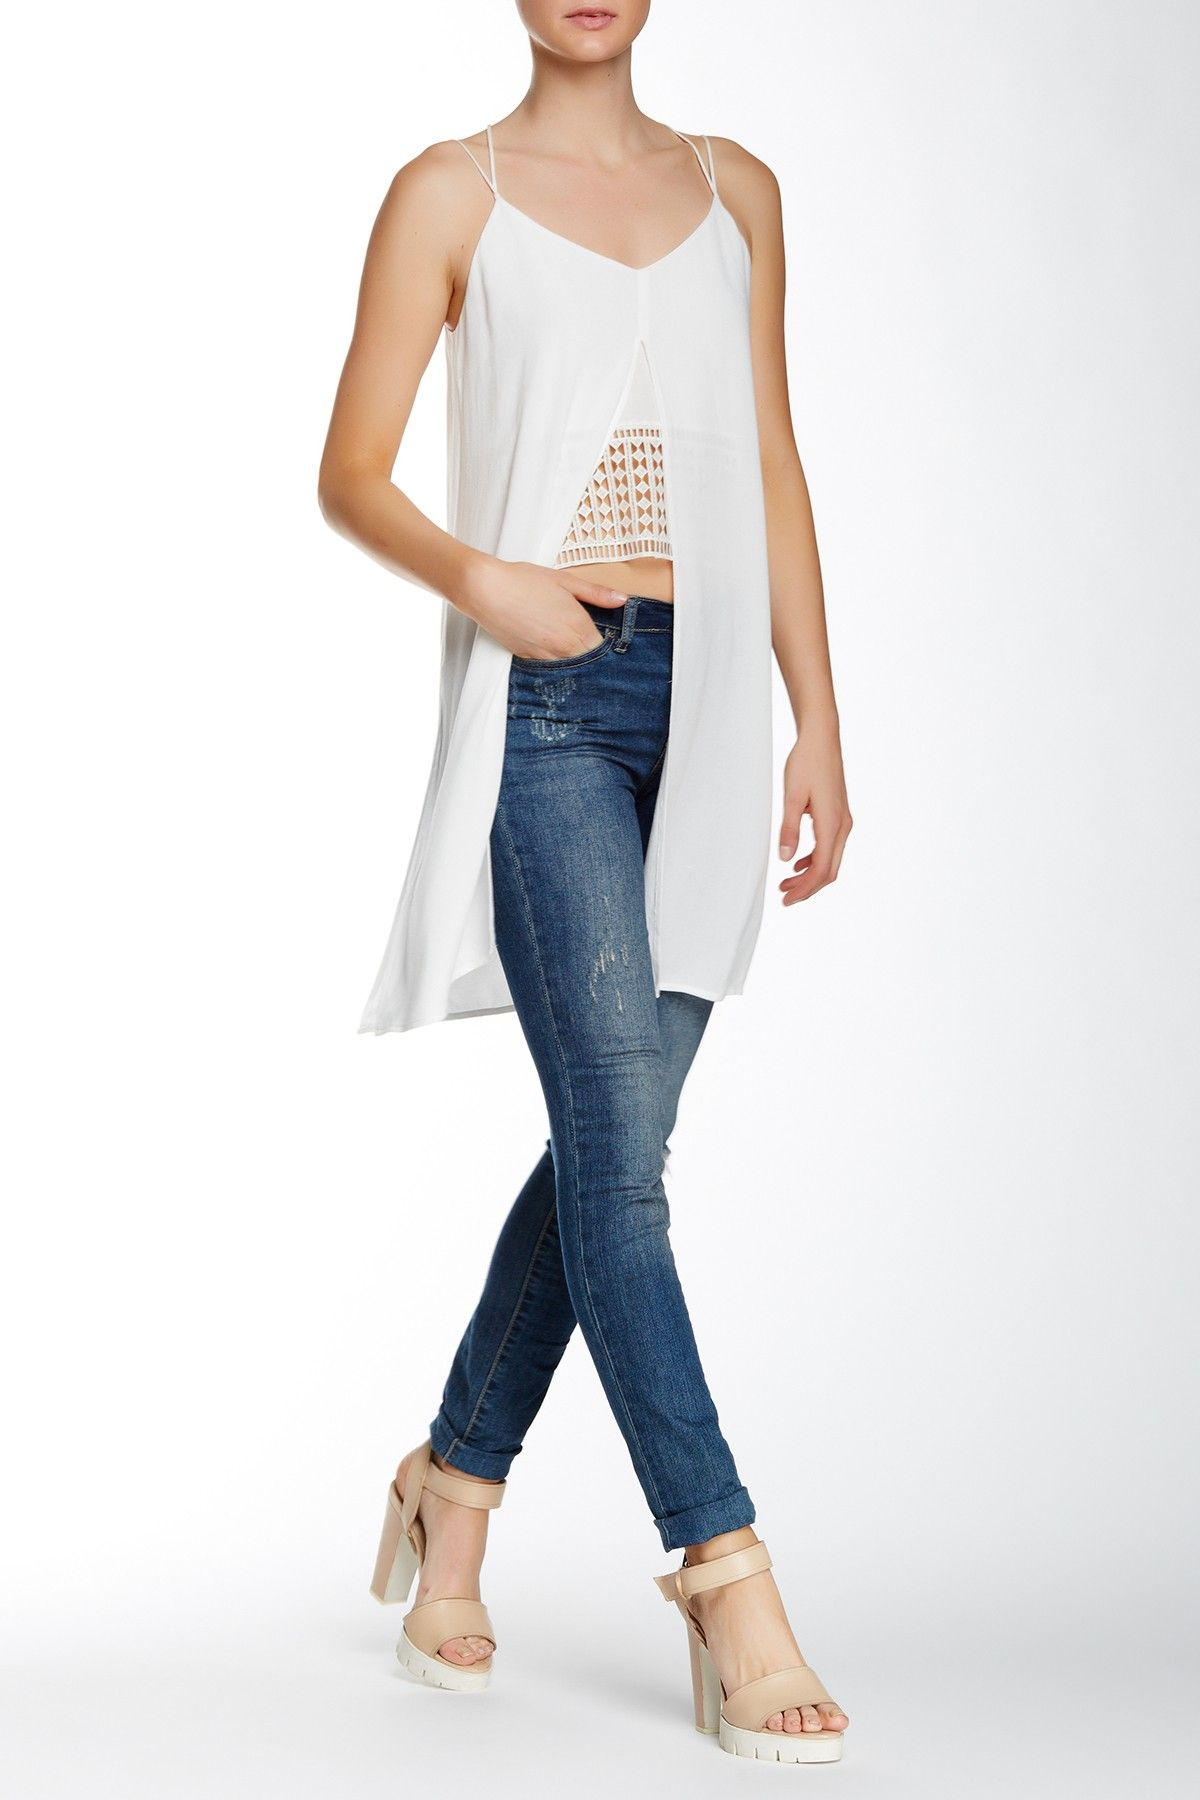 Peek-A-Boo Crochet Inset Long Tank by OnTwelfth on @HauteLook